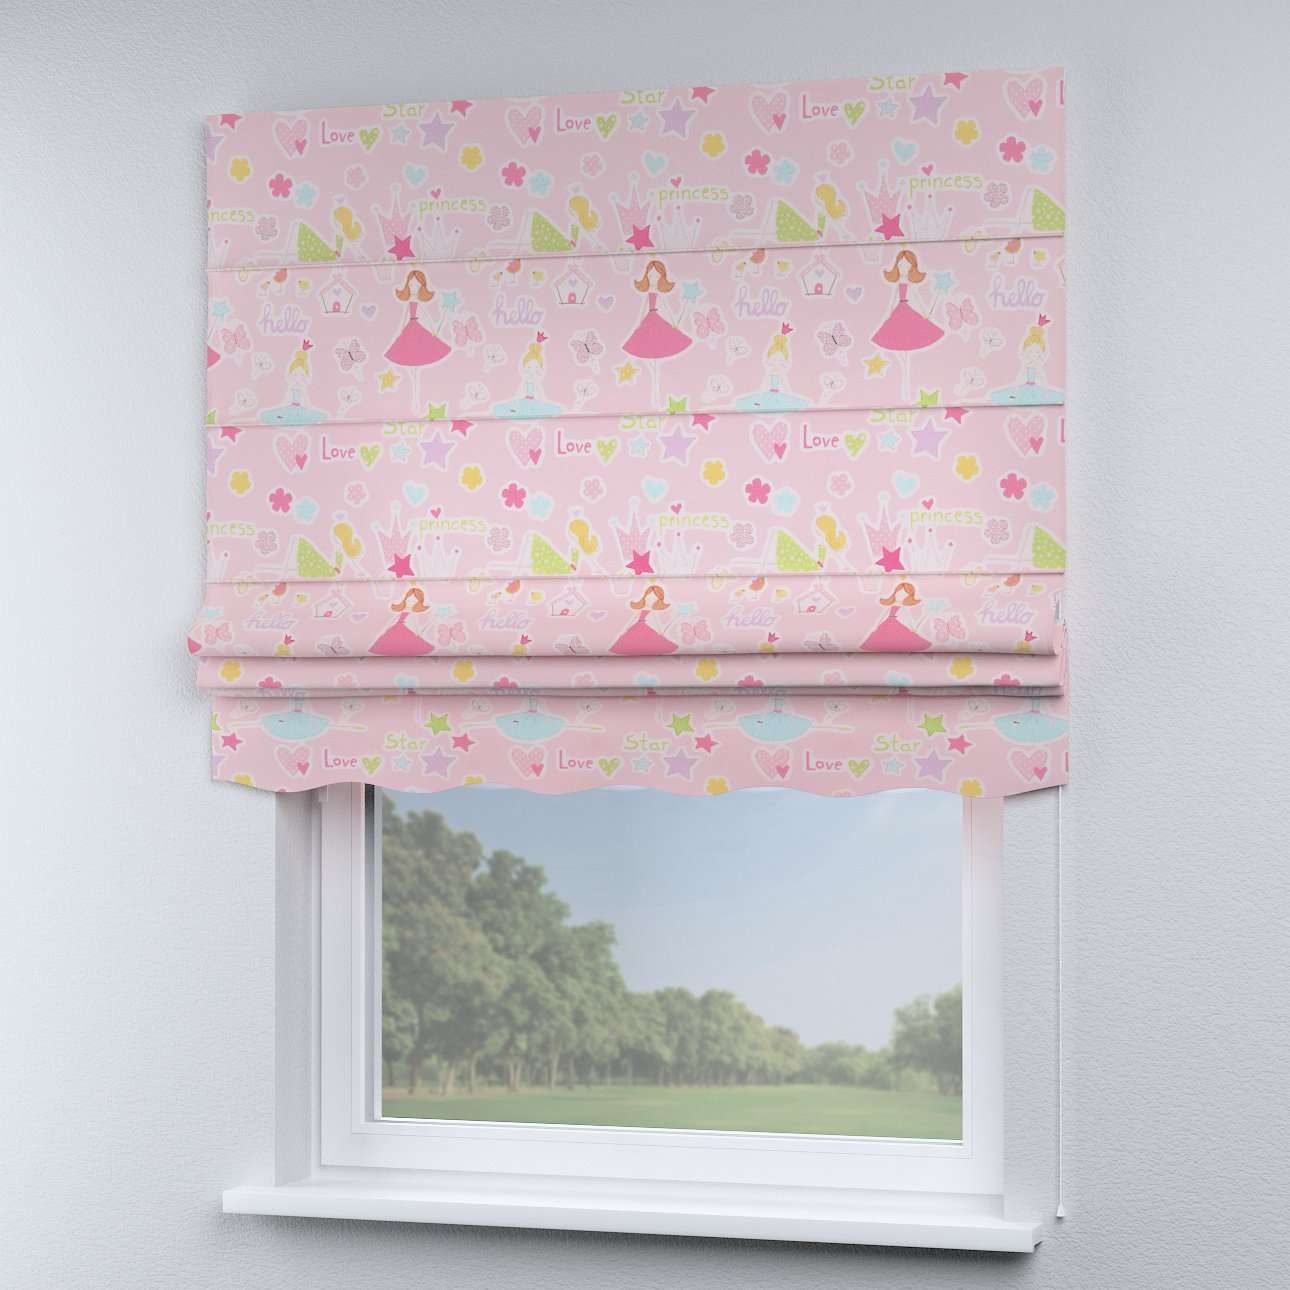 Florence roman blind  80 x 170 cm (31.5 x 67 inch) in collection Little World, fabric: 141-50